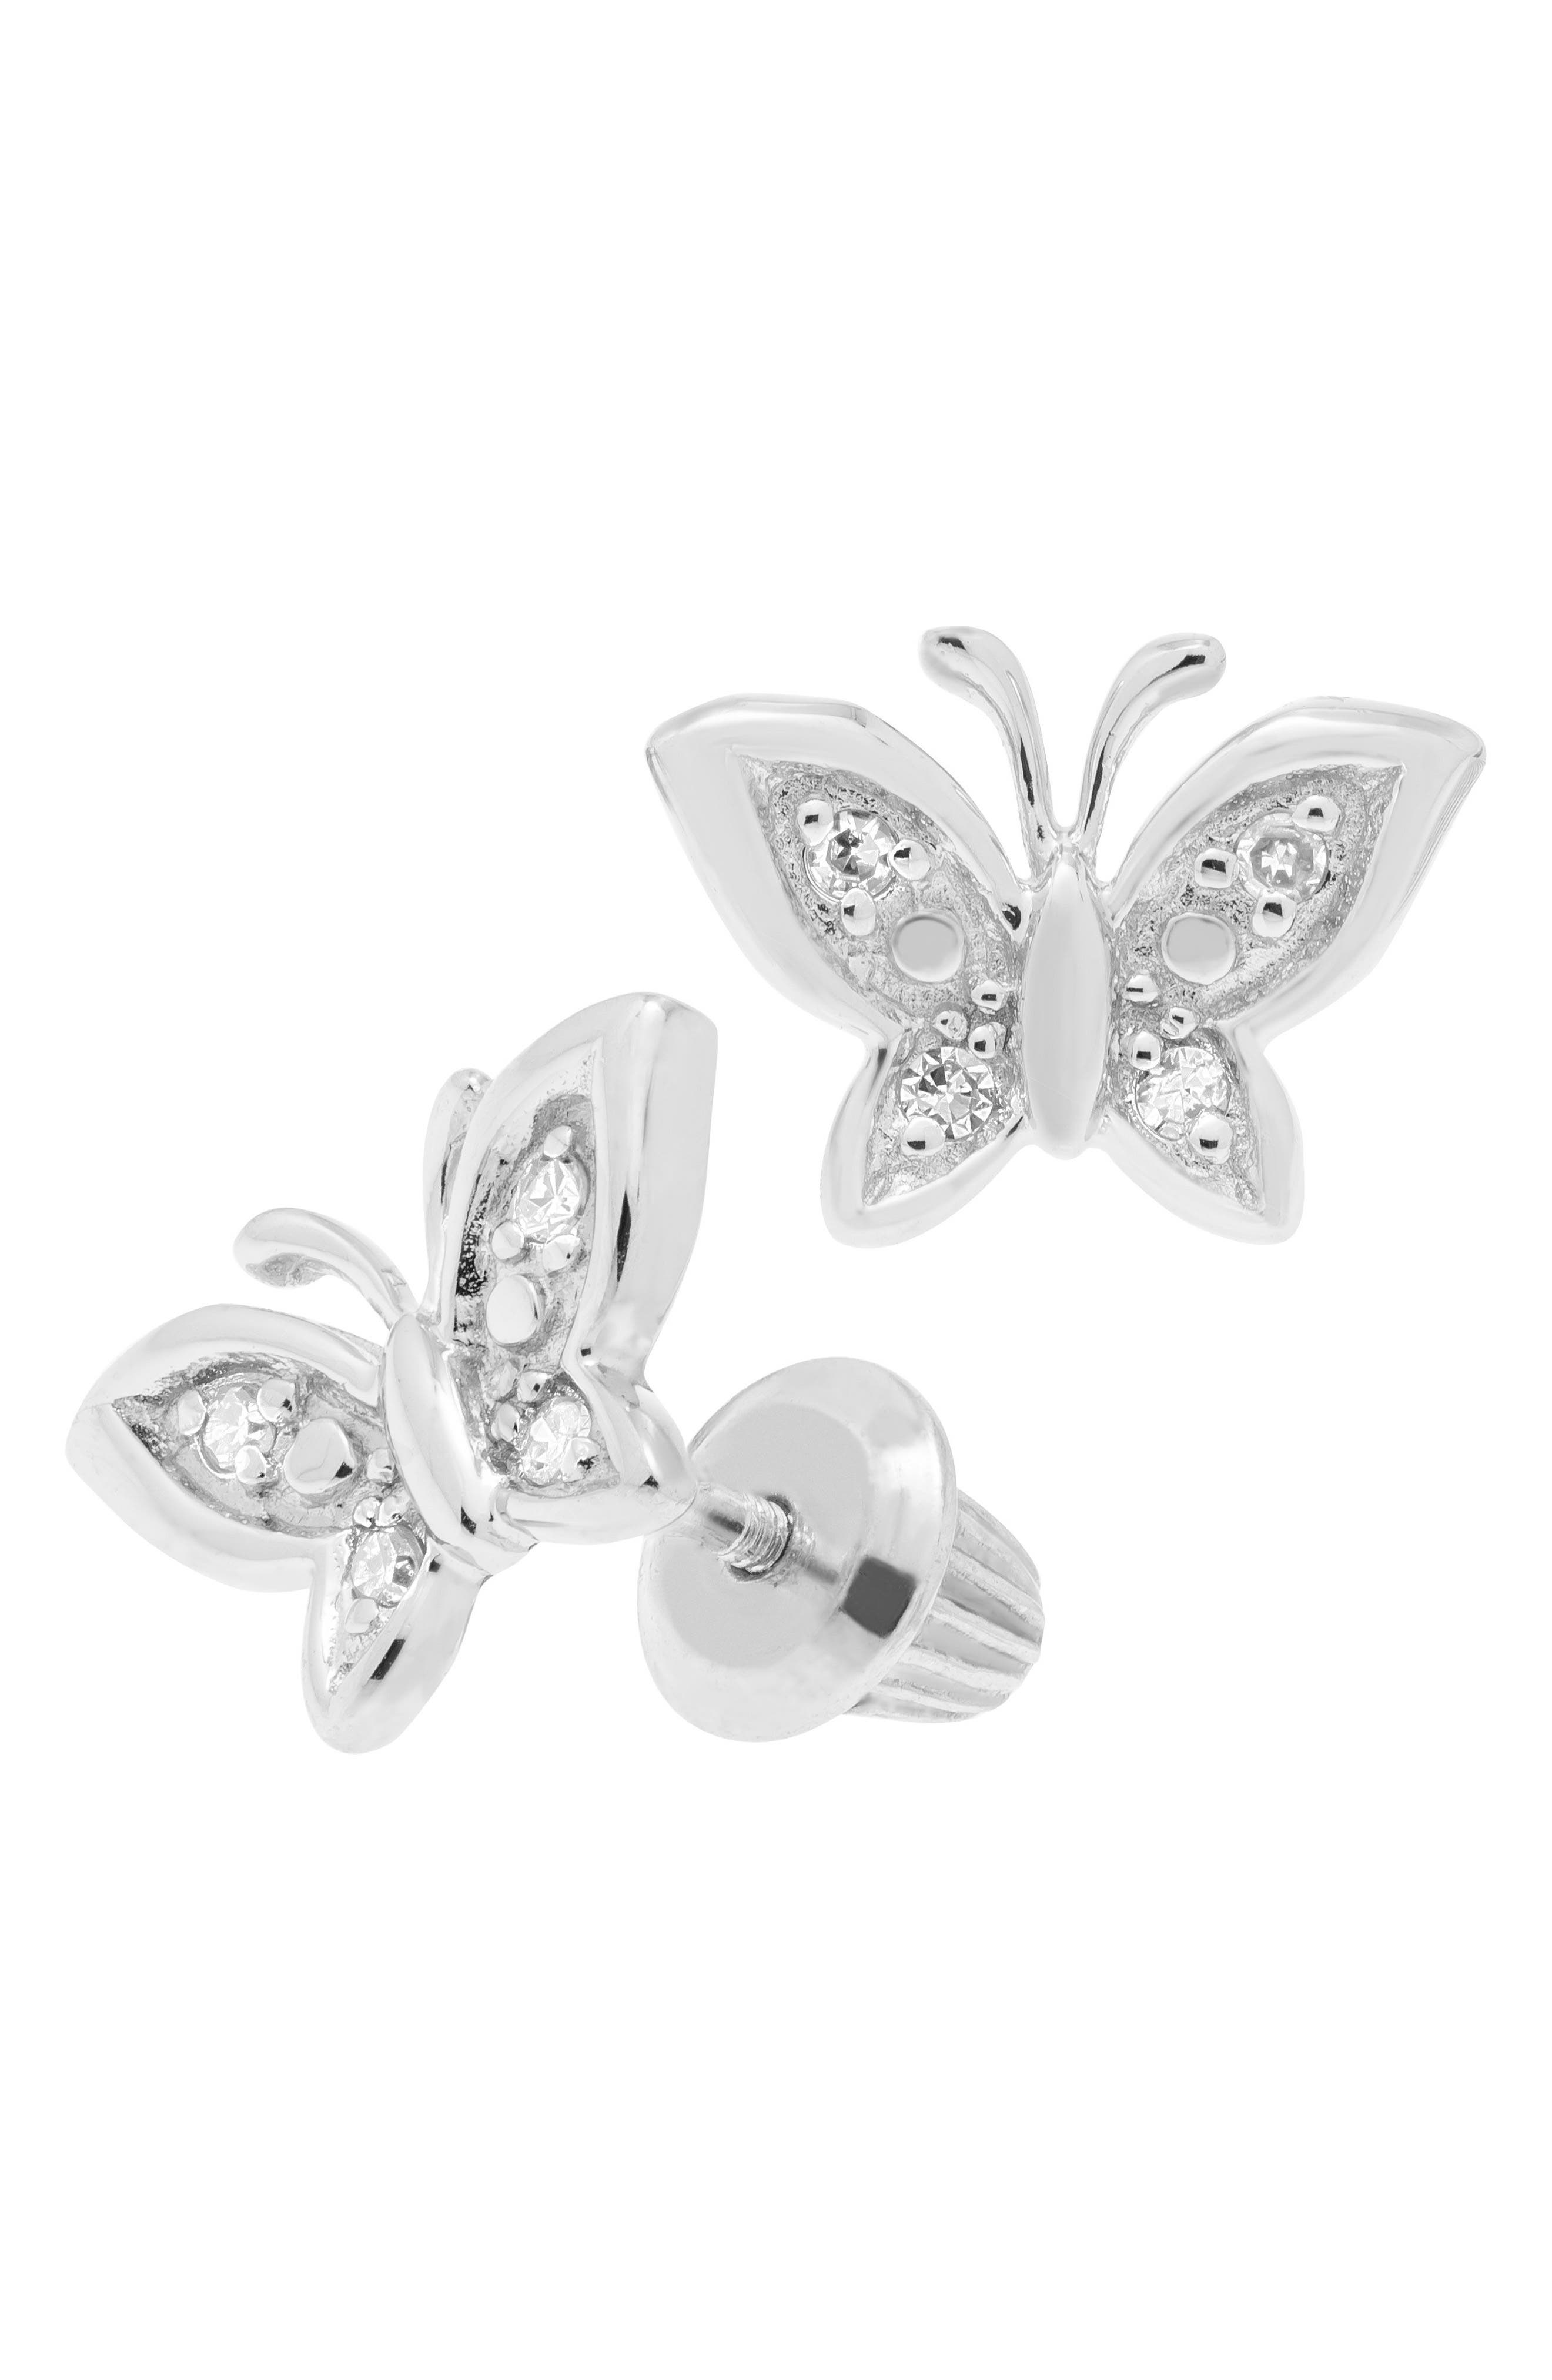 Alternate Image 1 Selected - Mignonette Sterling Silver & Diamond Butterfly Stud Earrings